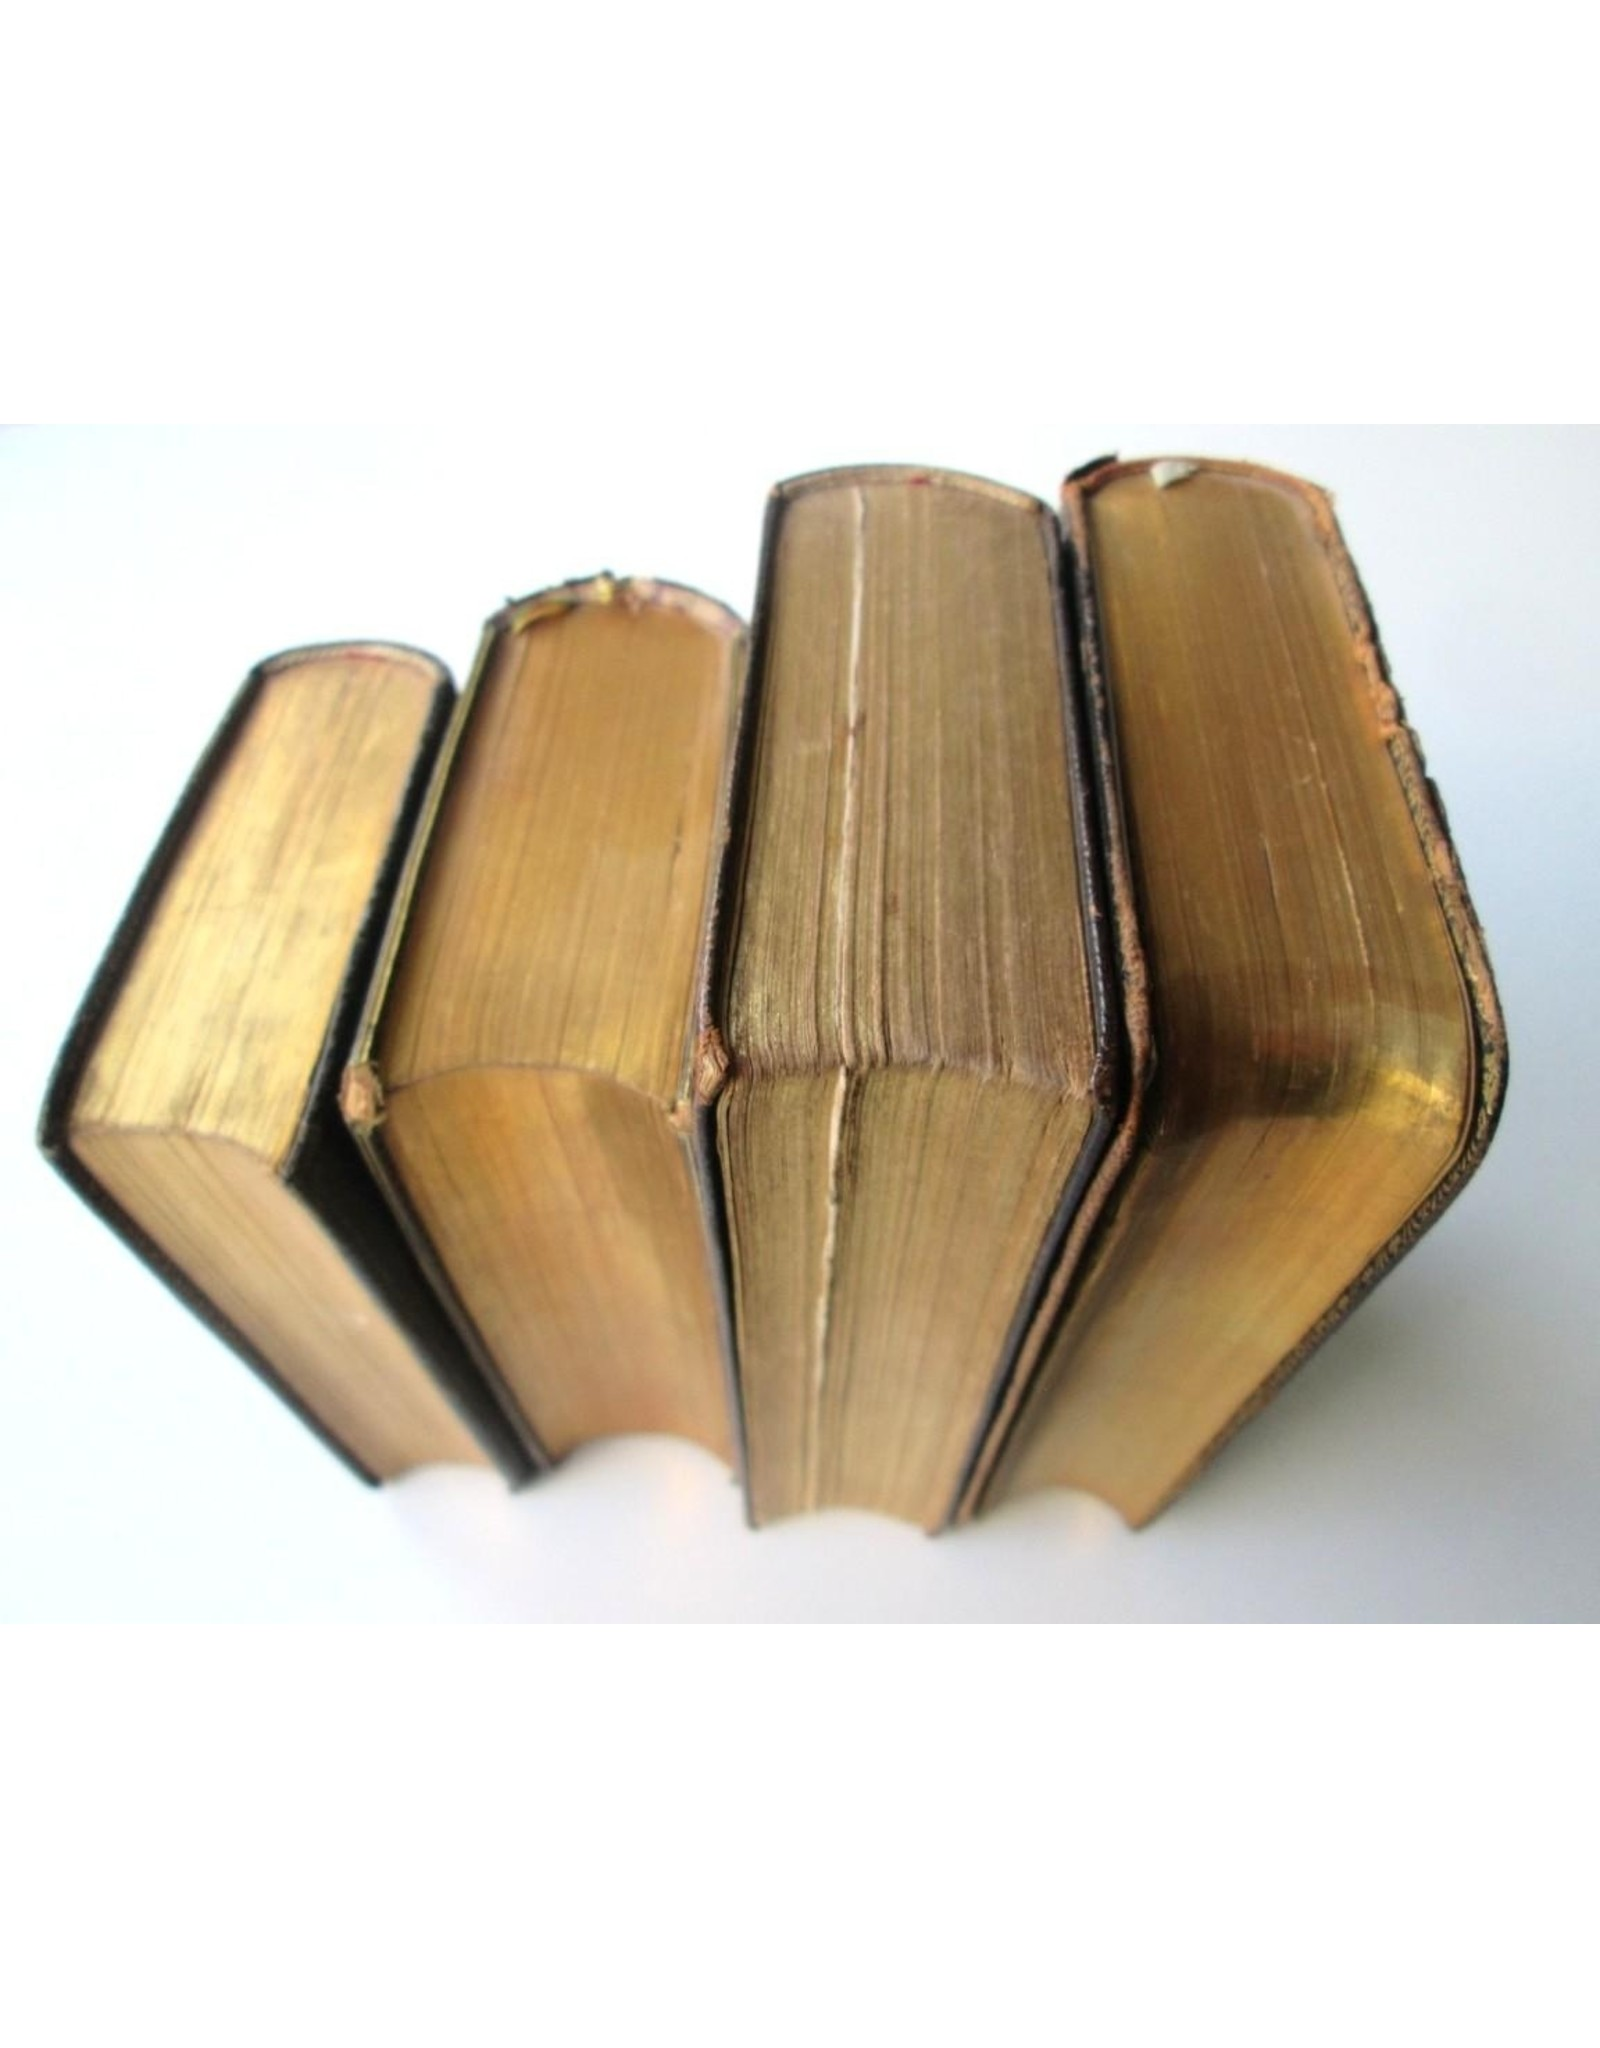 [Book bindings] Lot with 4 old French prayer books